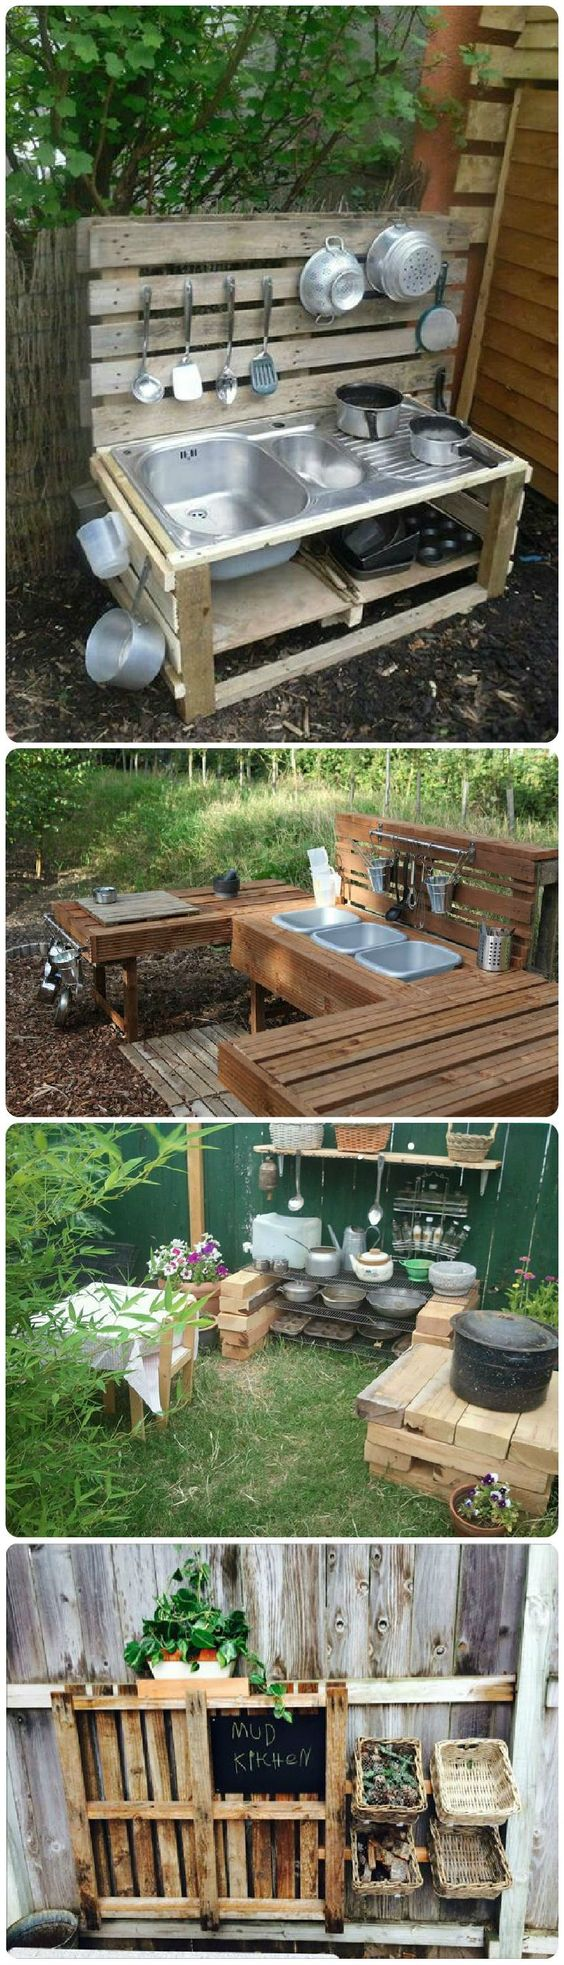 Top 20 Of Mud Kitchen Ideas For Kids Pie Kitchen Diy Accessories And Outdoor Play